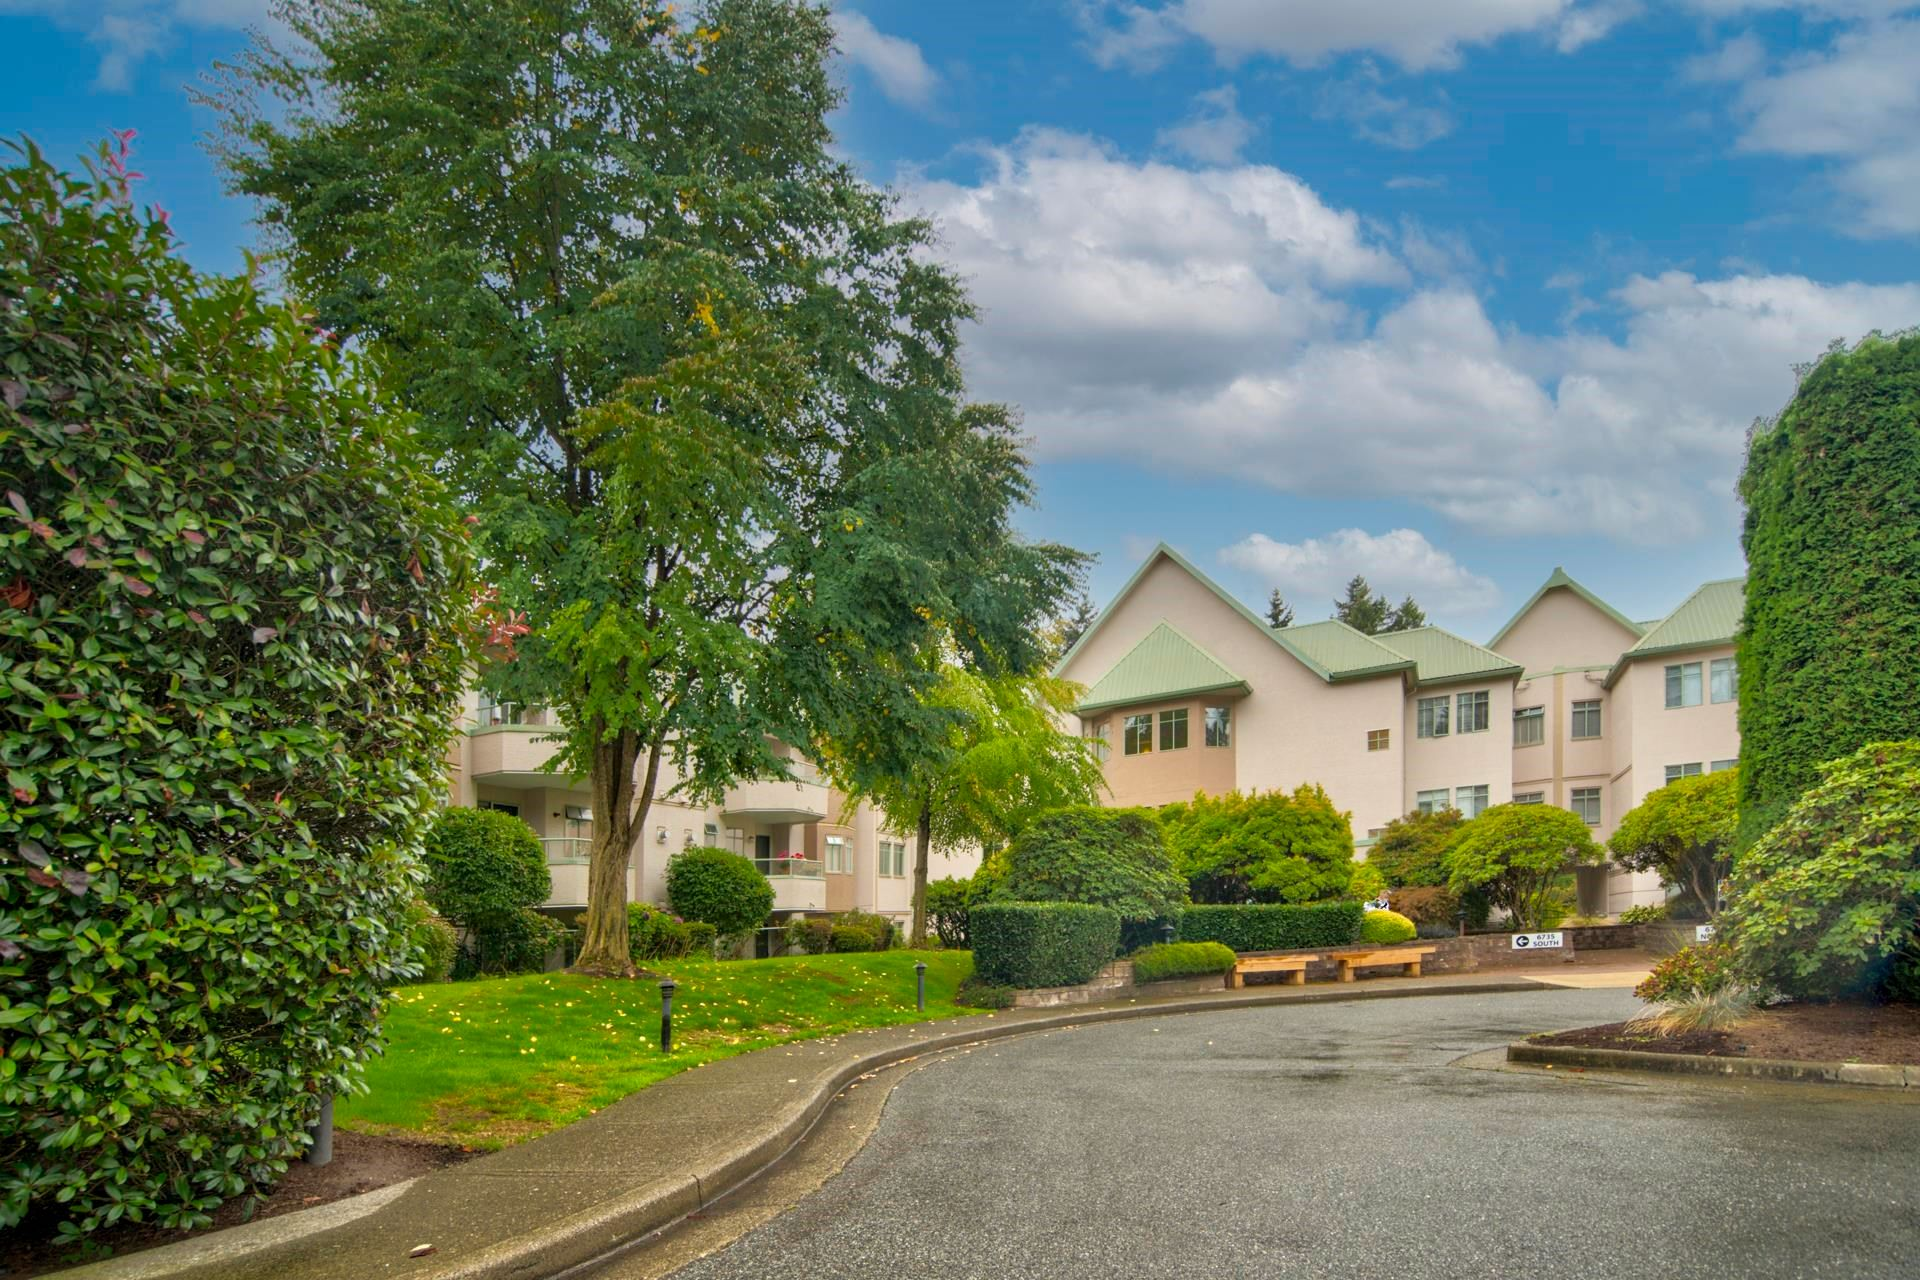 Main Photo: 316 6735 STATION HILL COURT in Burnaby: South Slope Condo for sale (Burnaby South)  : MLS®# R2615271